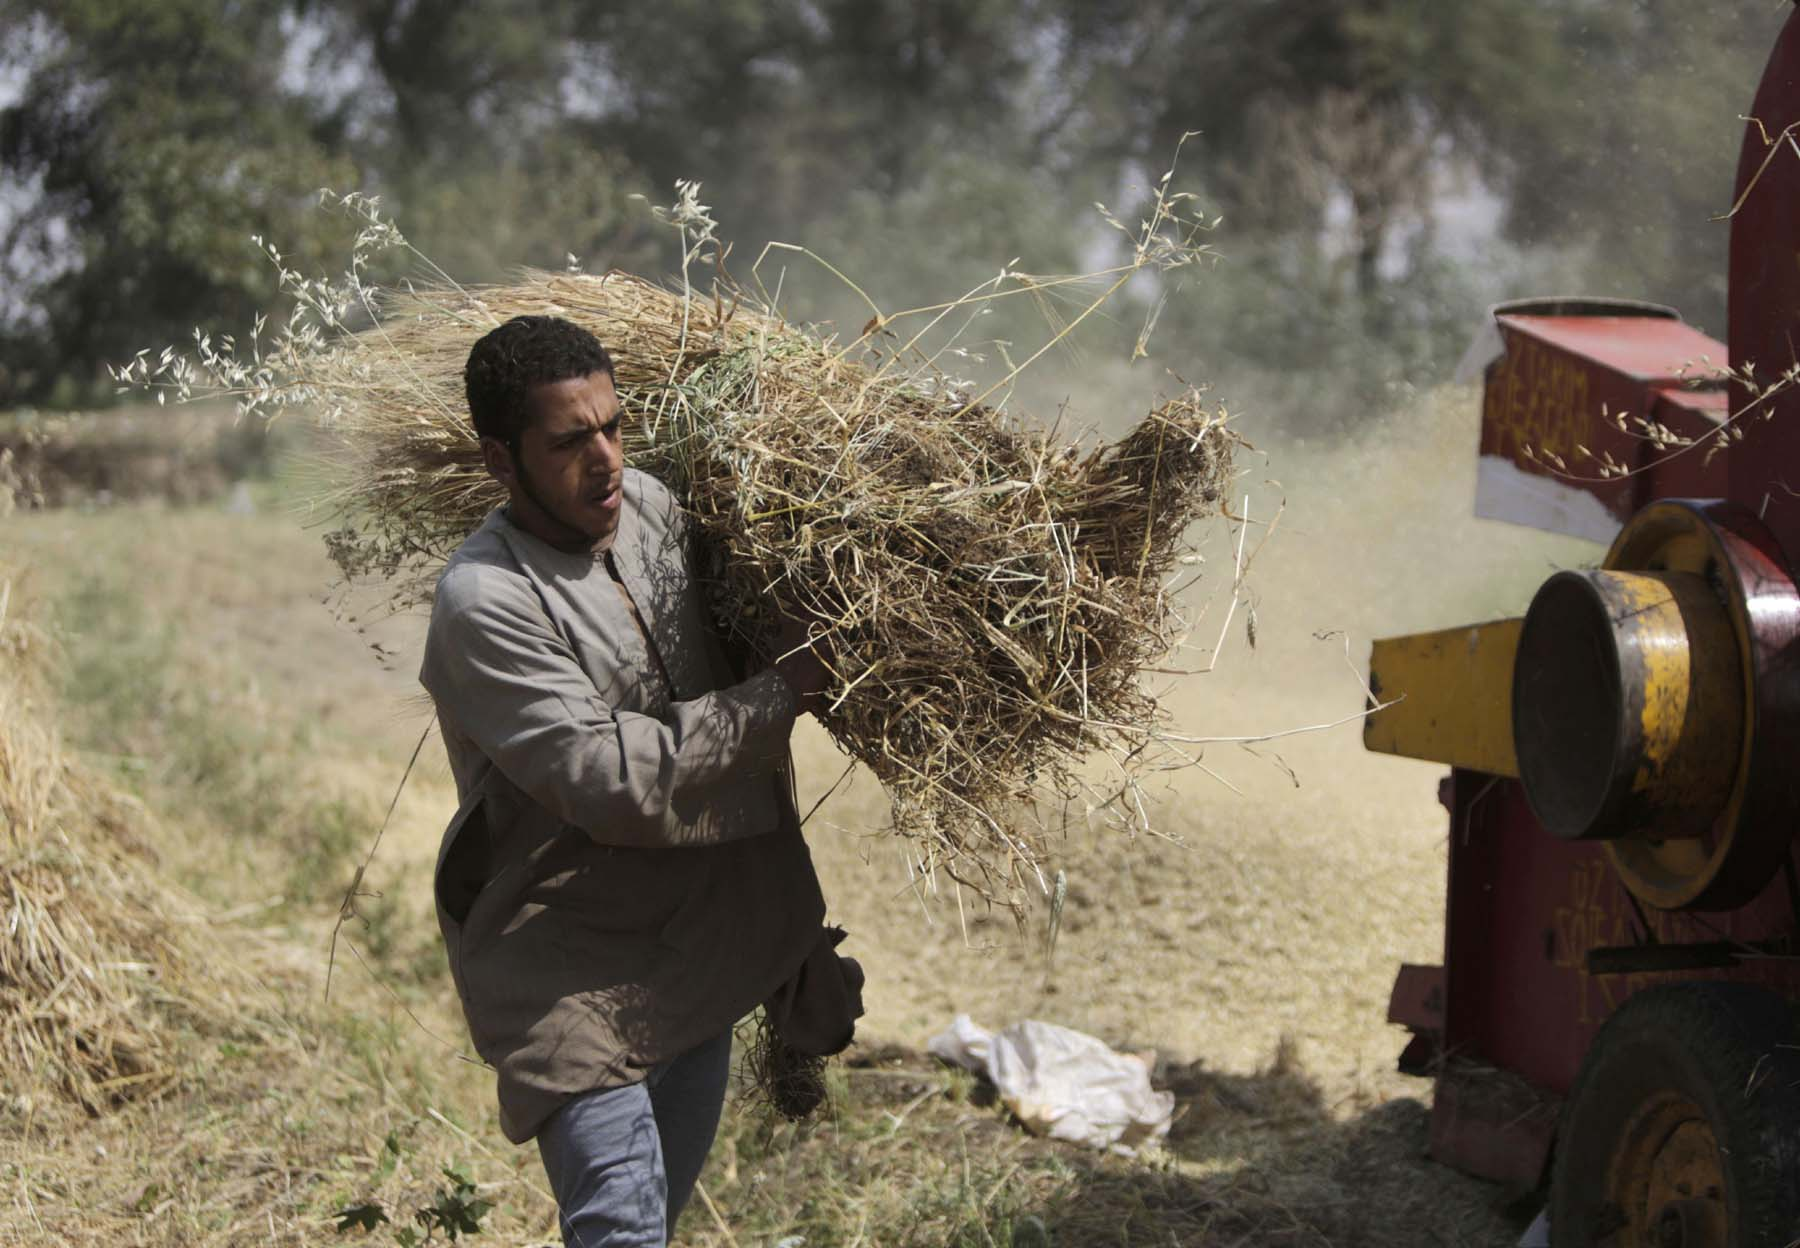 An Egyptian farmer carries wheat crop bundles on a farm in Beni Suef, south of Cairo. (AP)